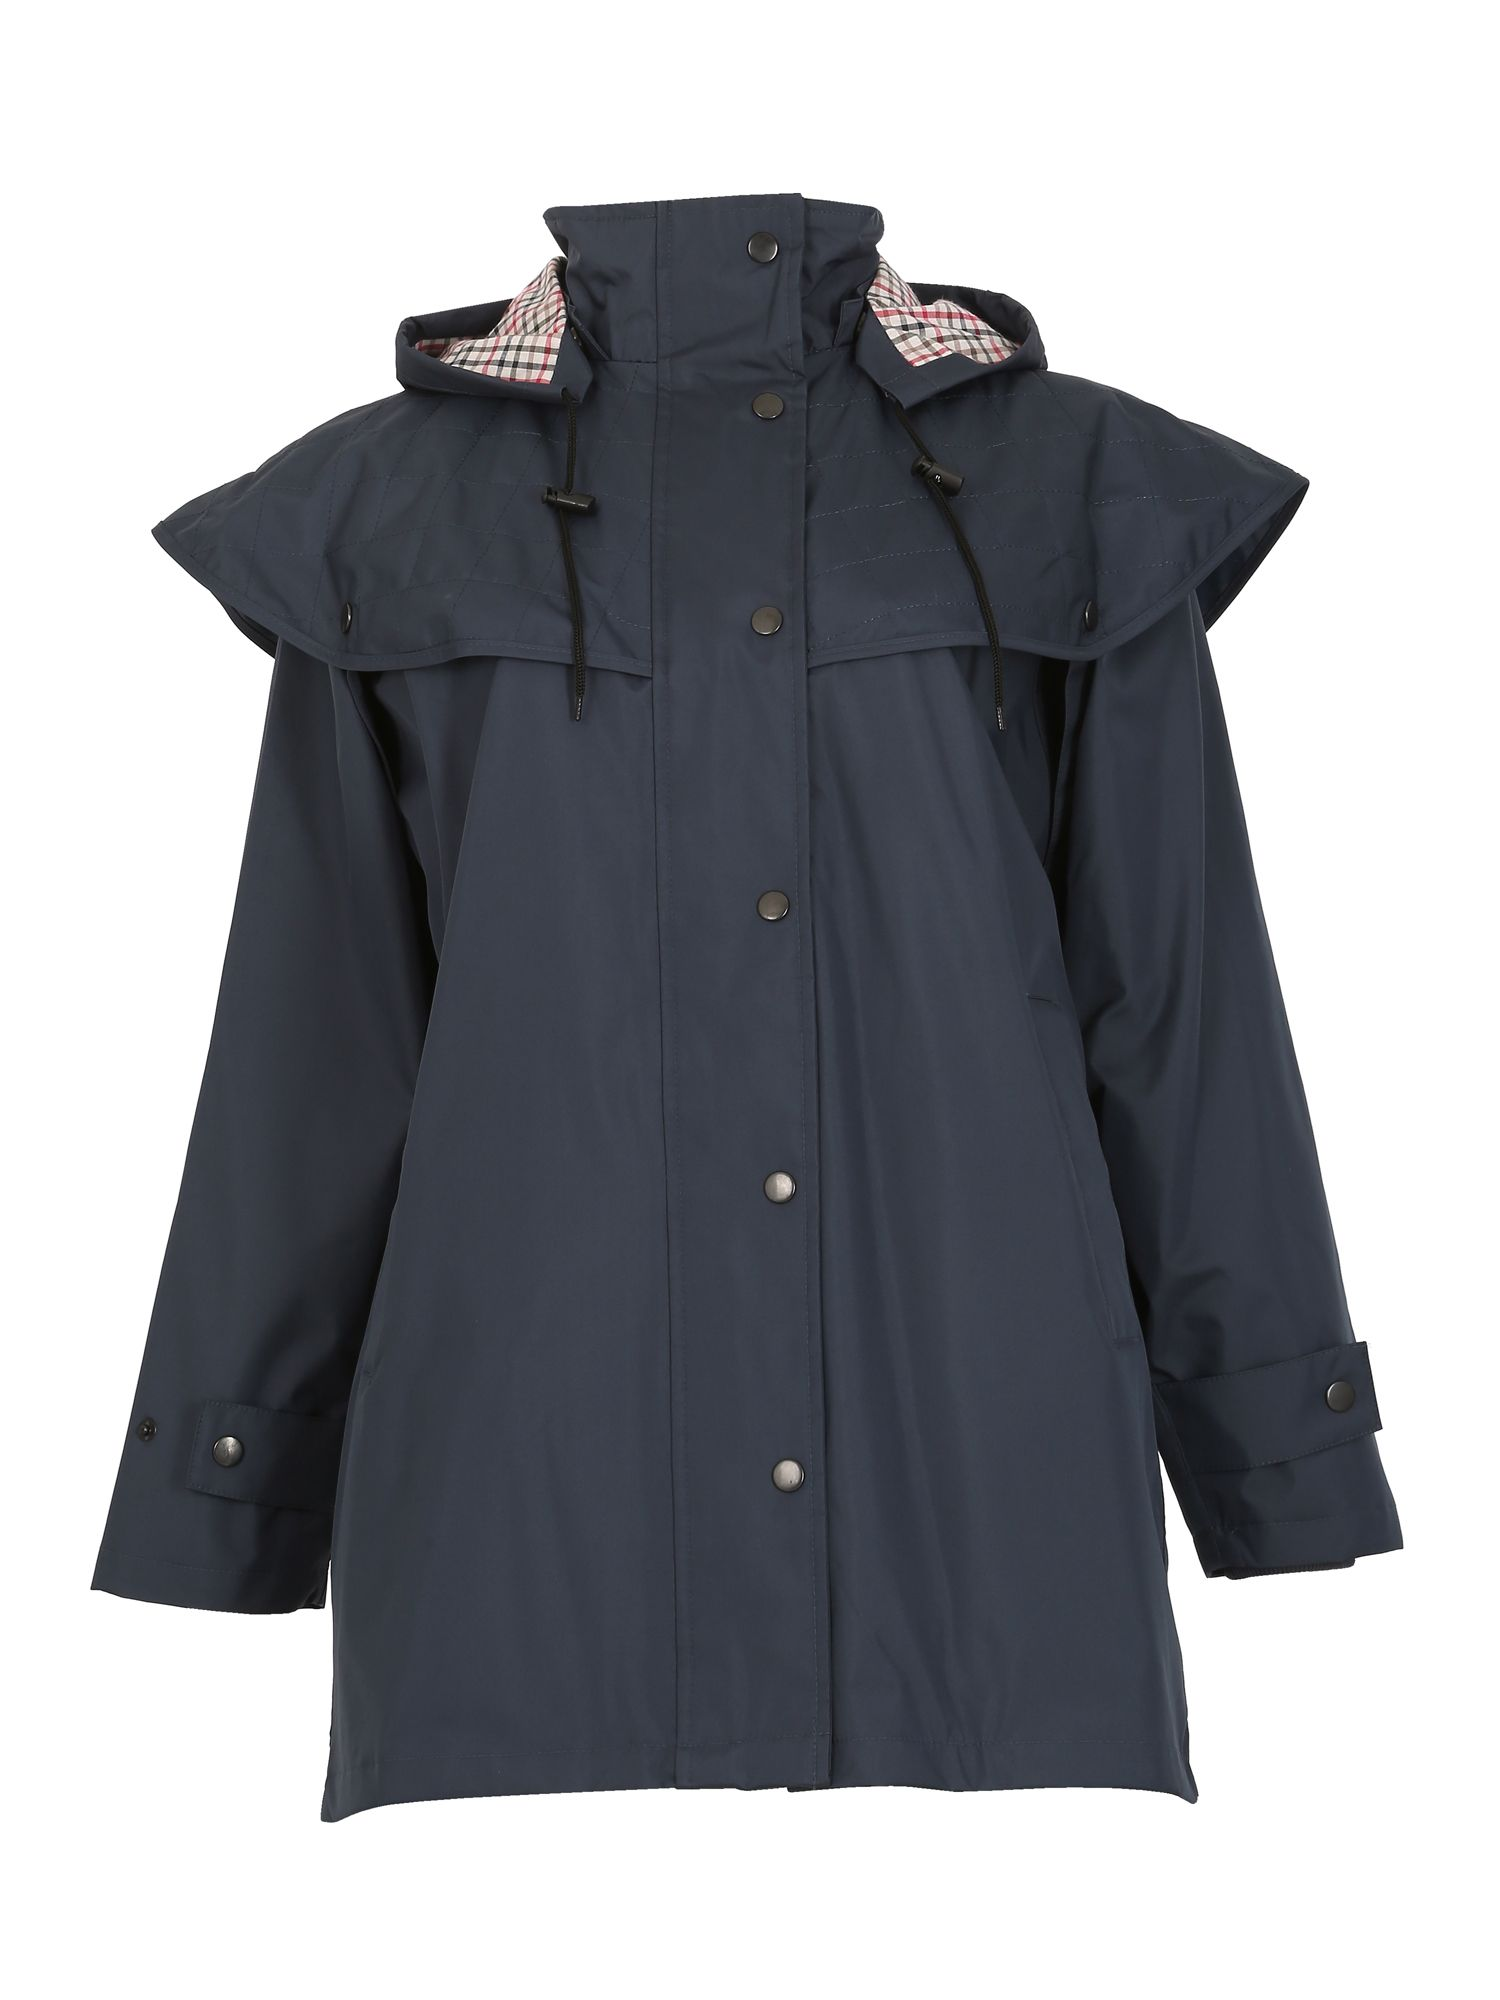 David Barry Shower Resistant Storm Jacket, Blue